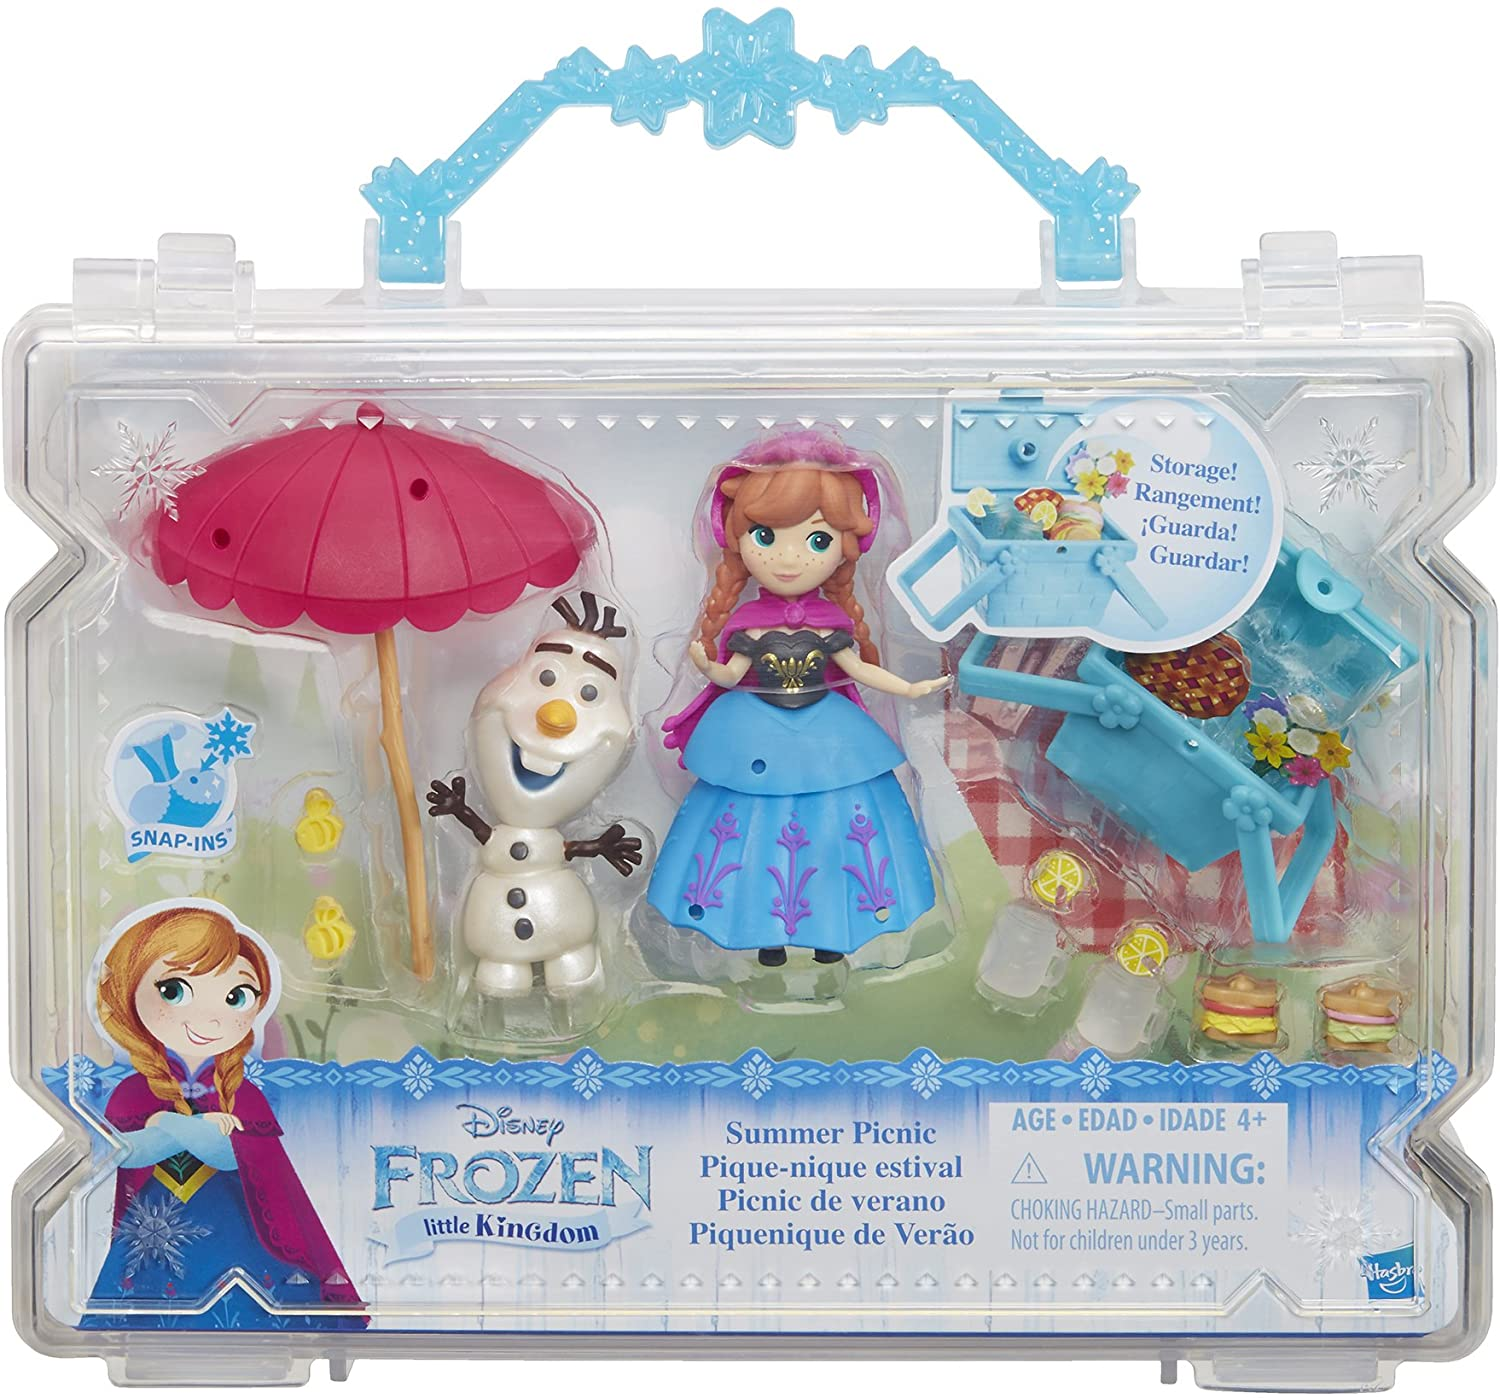 Disney Frozen Little Kingdom Playset